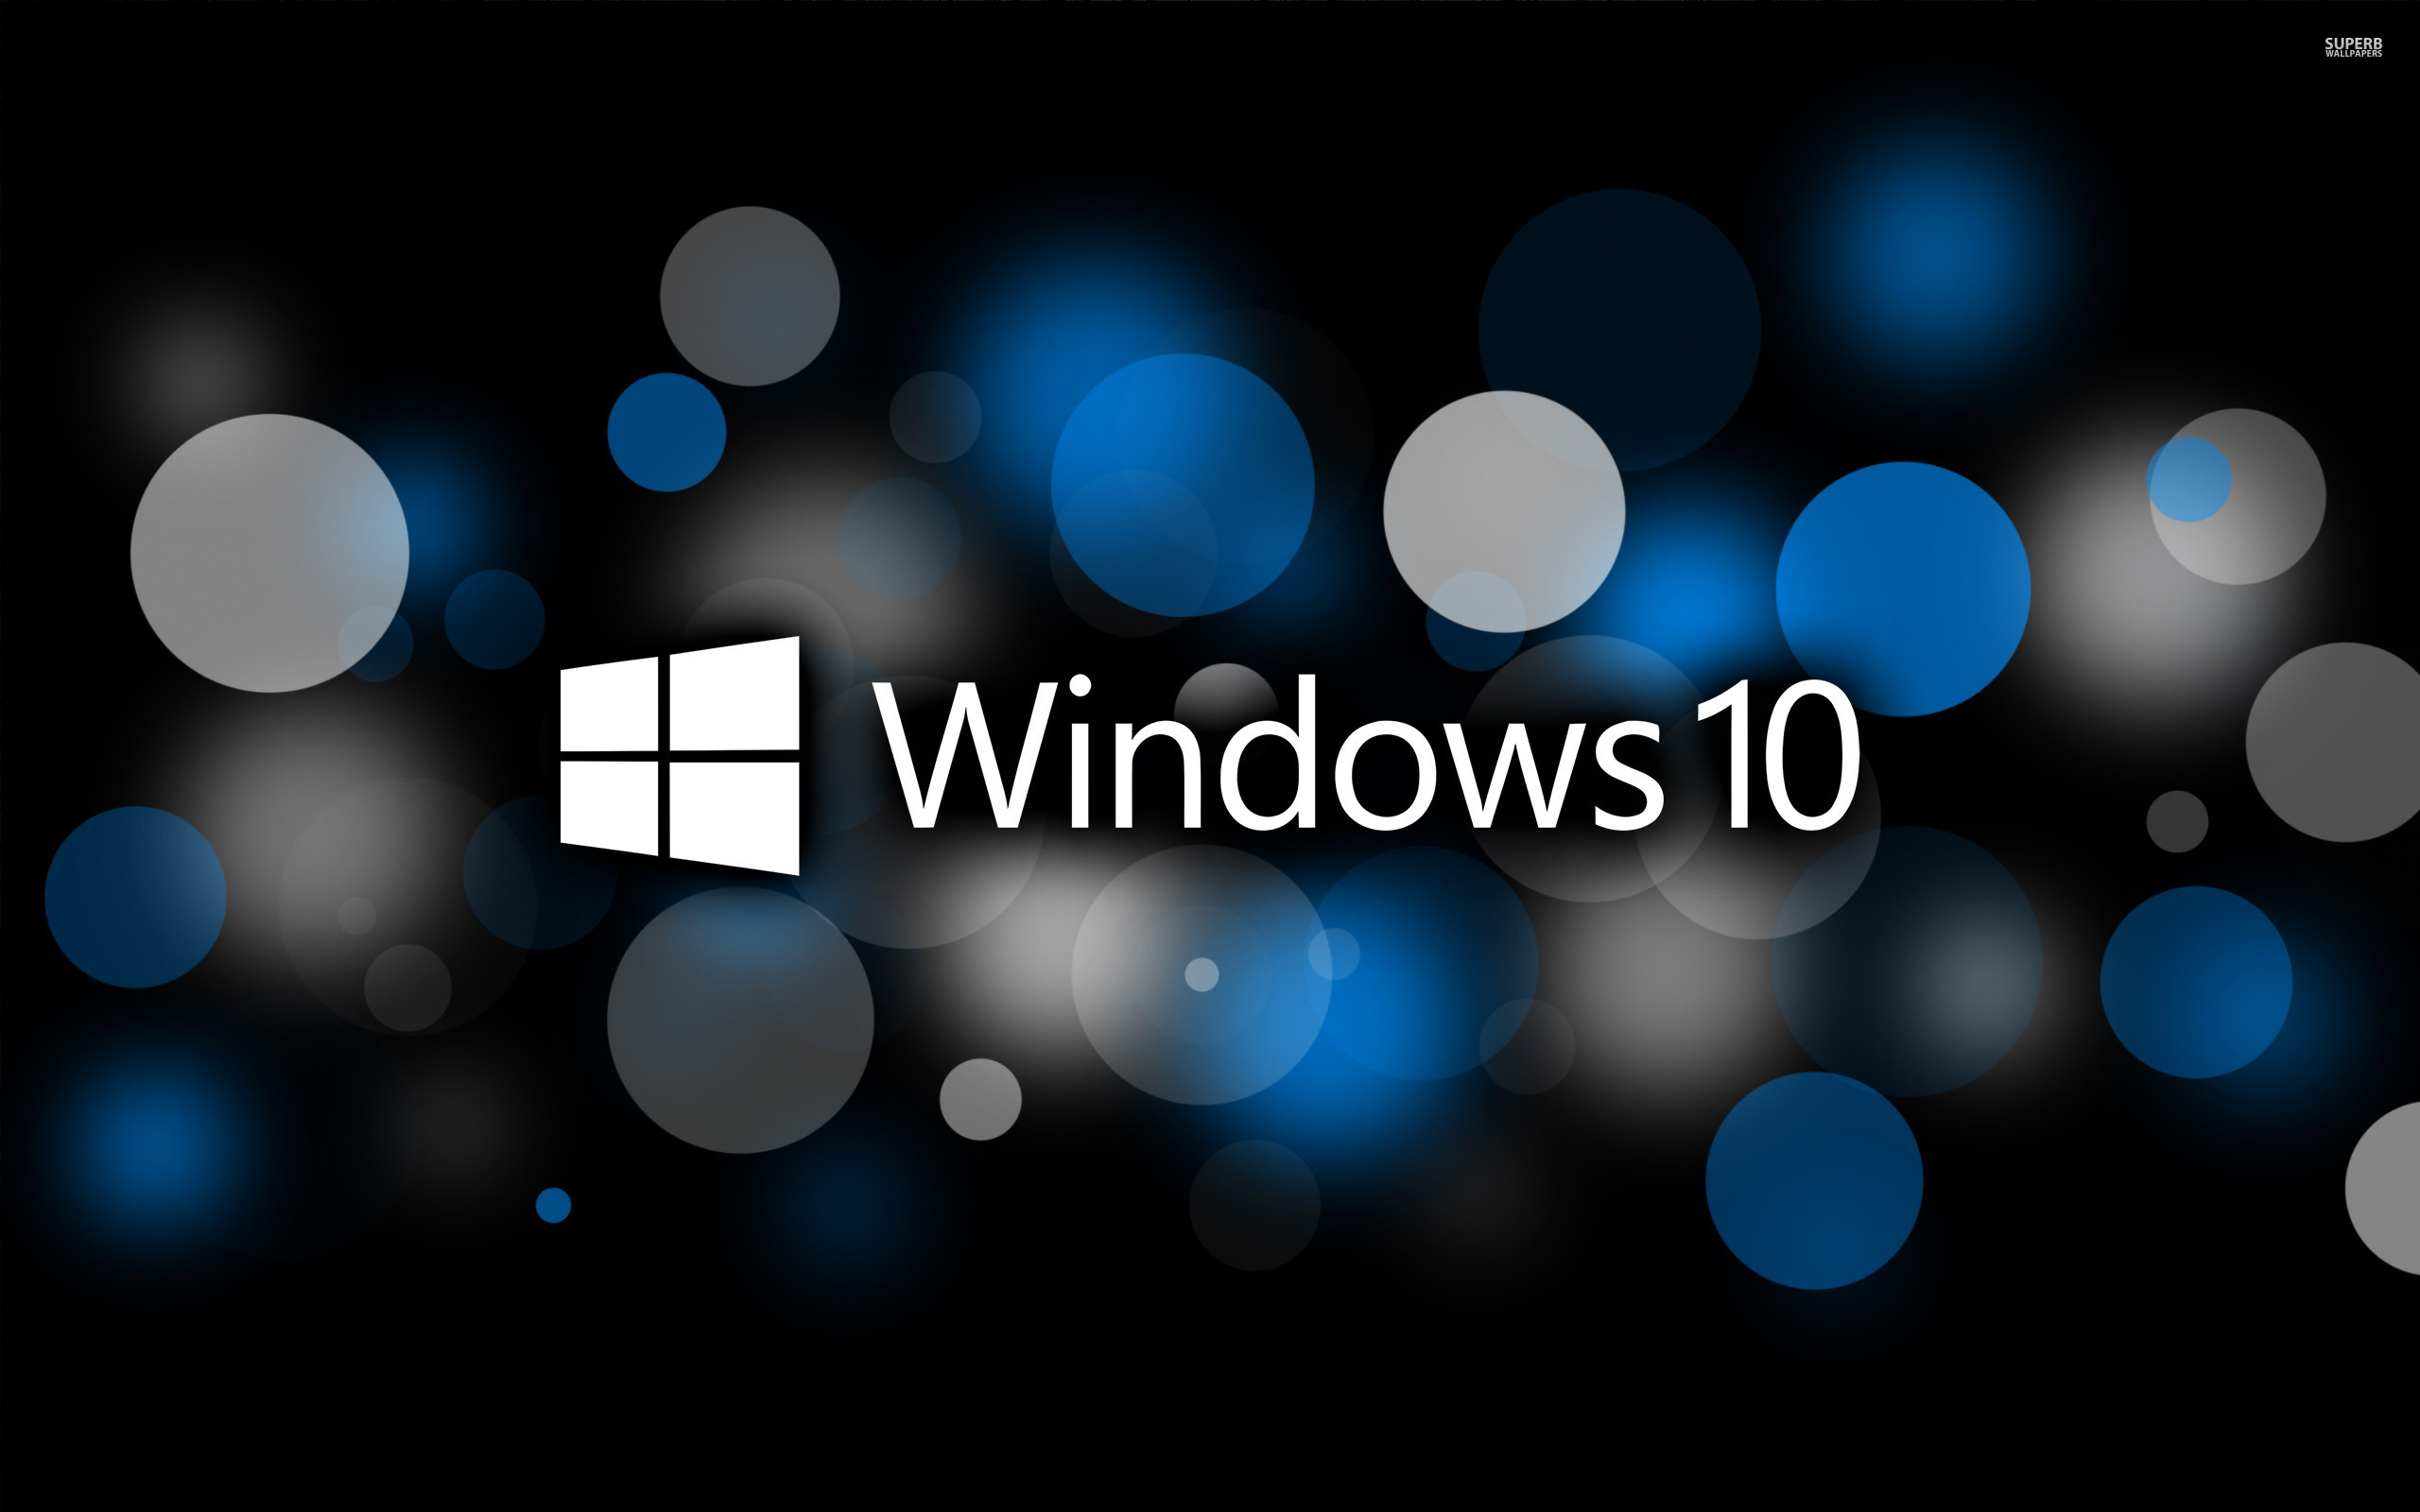 Windows 10 hd wallpaper wallpapersafari for 10 40 window definition